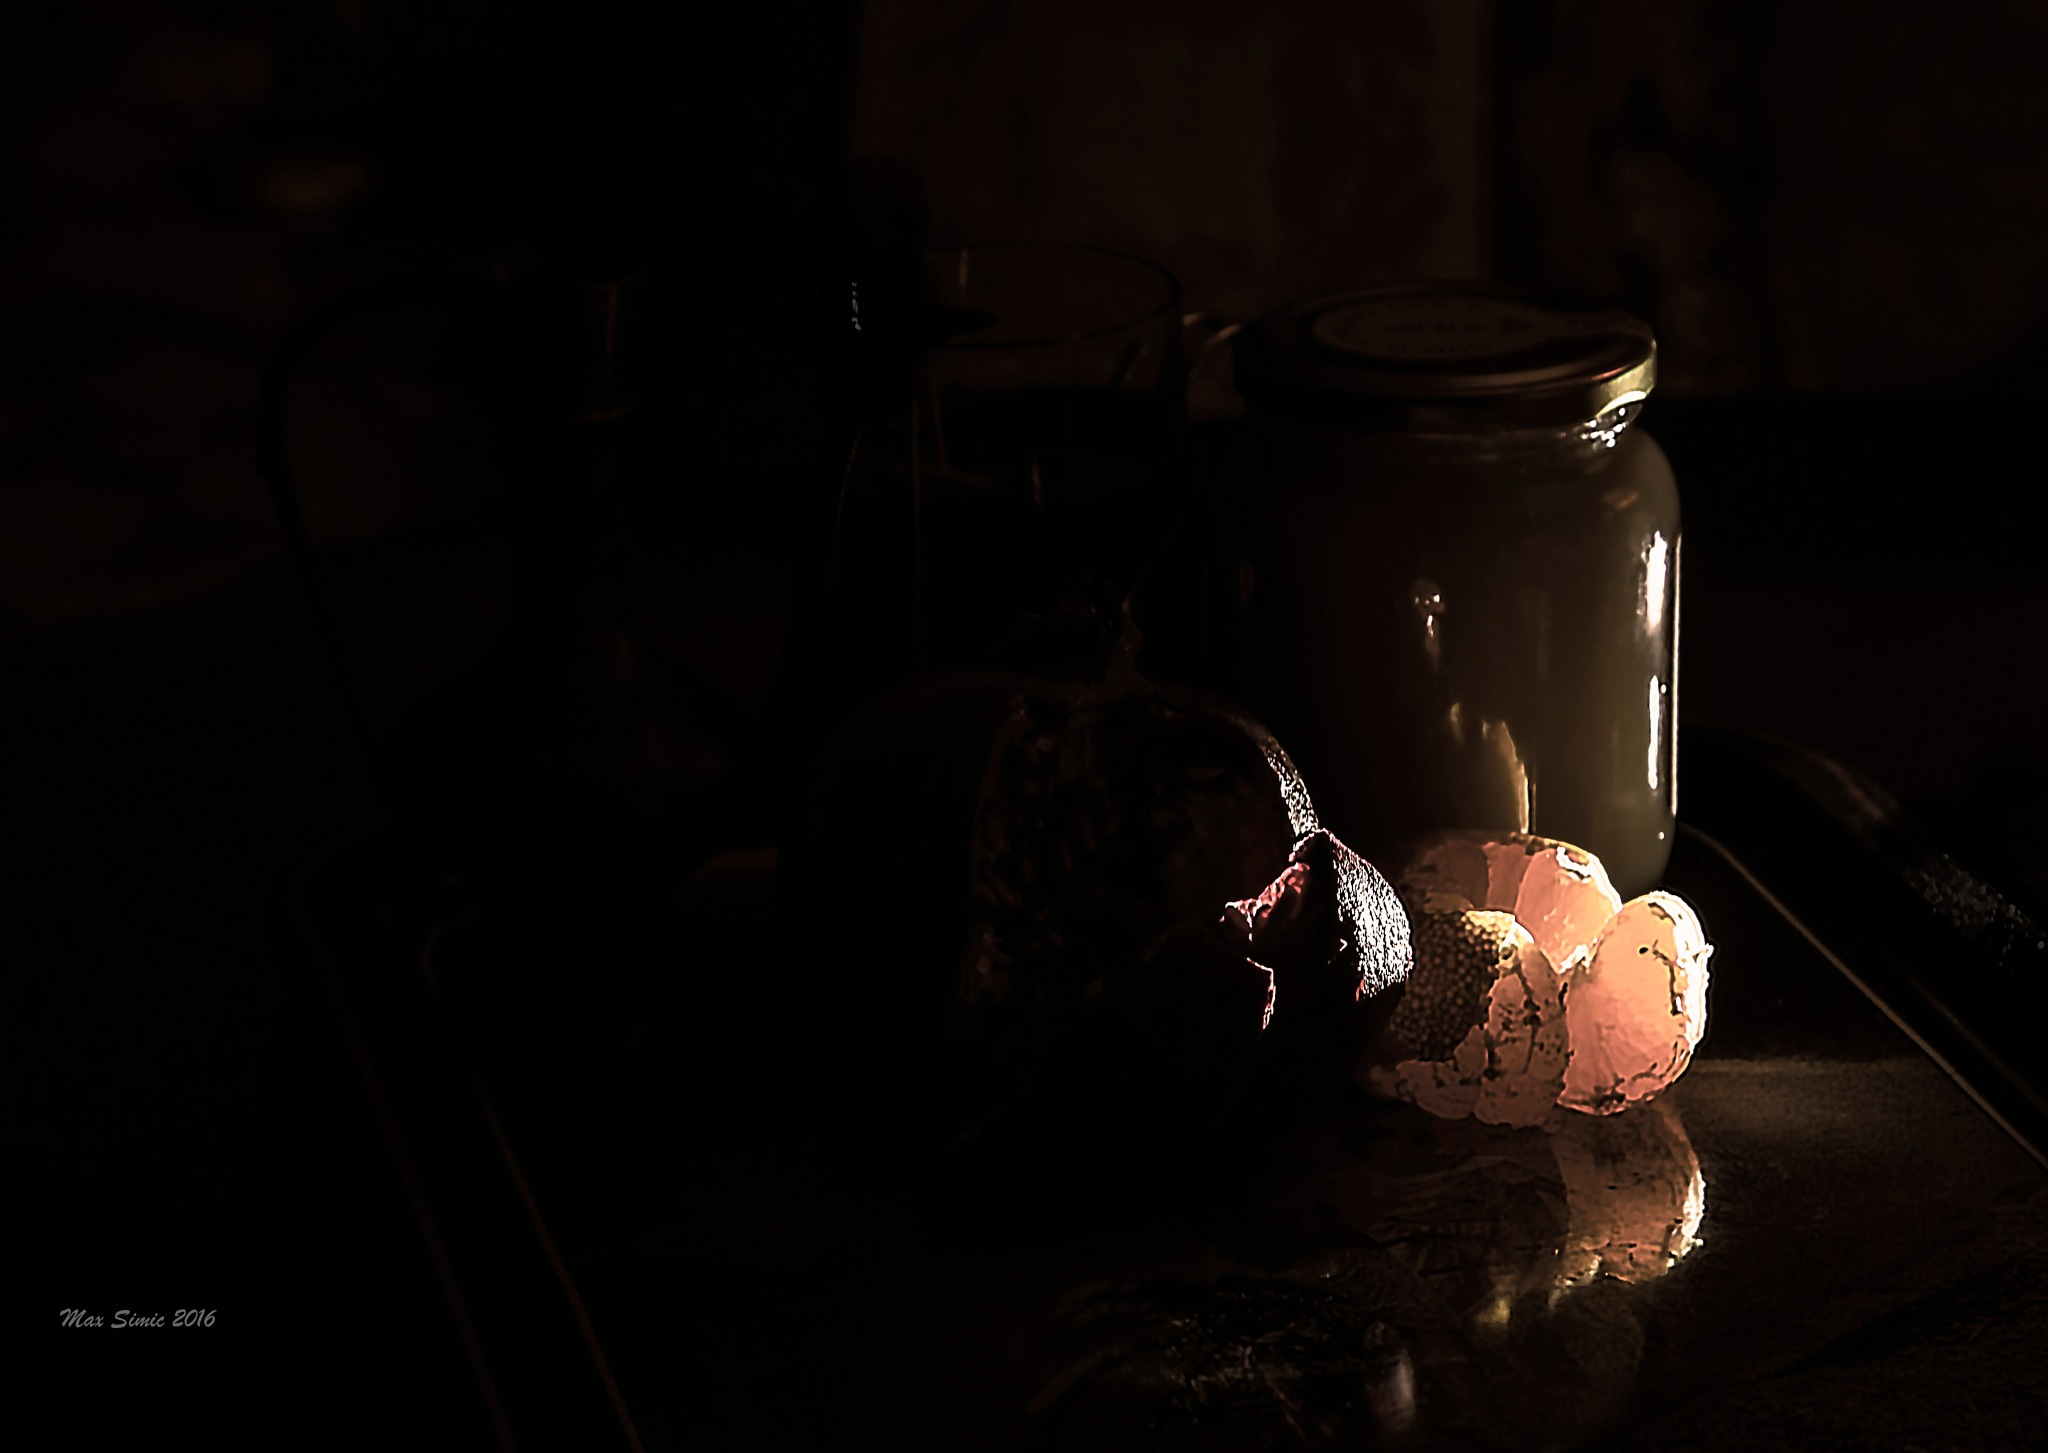 Darkness by MaxBSimic